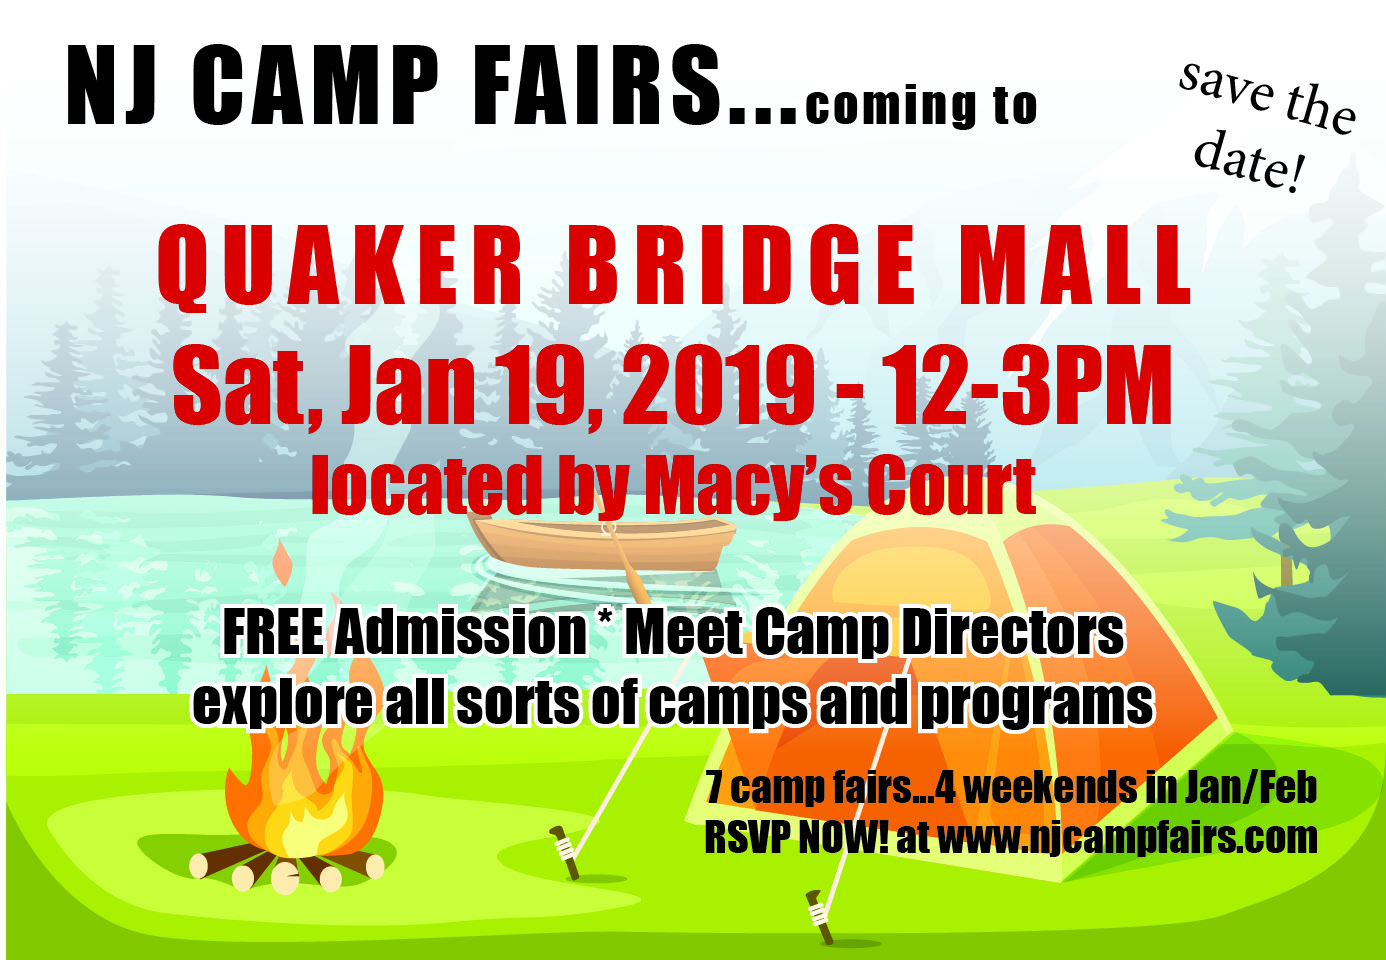 NJ CAMP FAIRS at the Quaker Bridge Mall